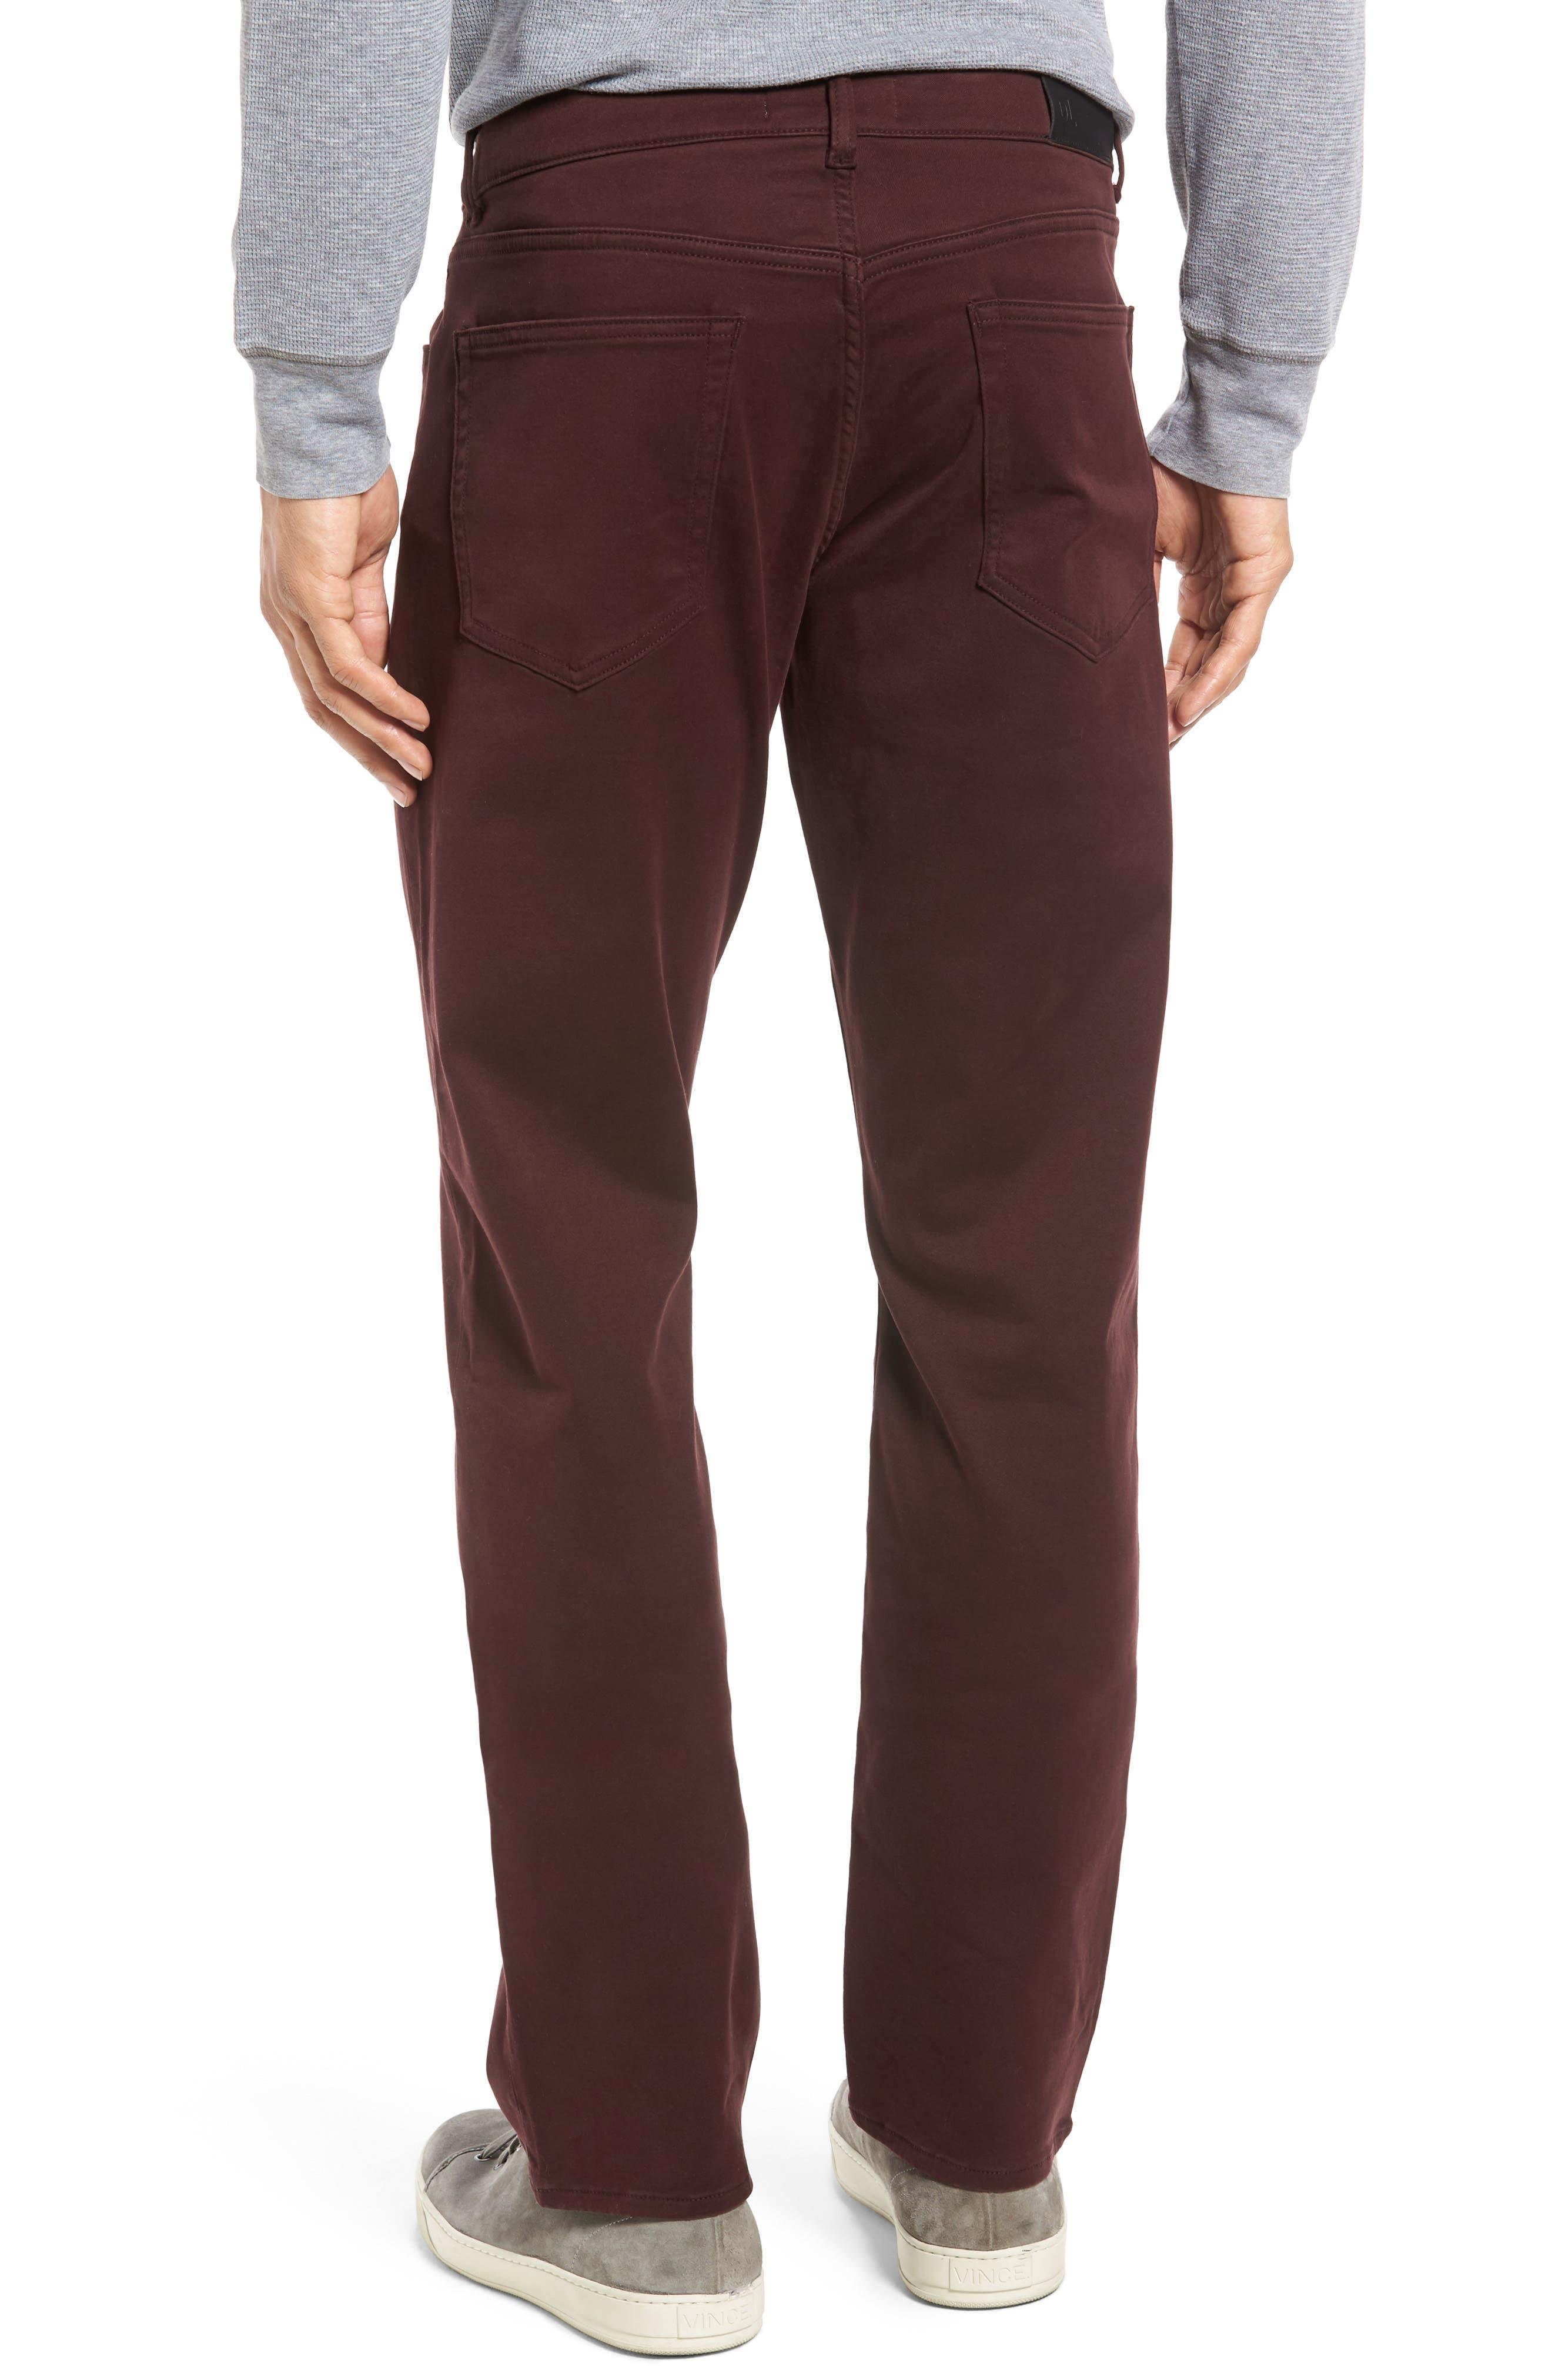 Russell Slim Fit Sateen Twill Pants,                             Alternate thumbnail 21, color,